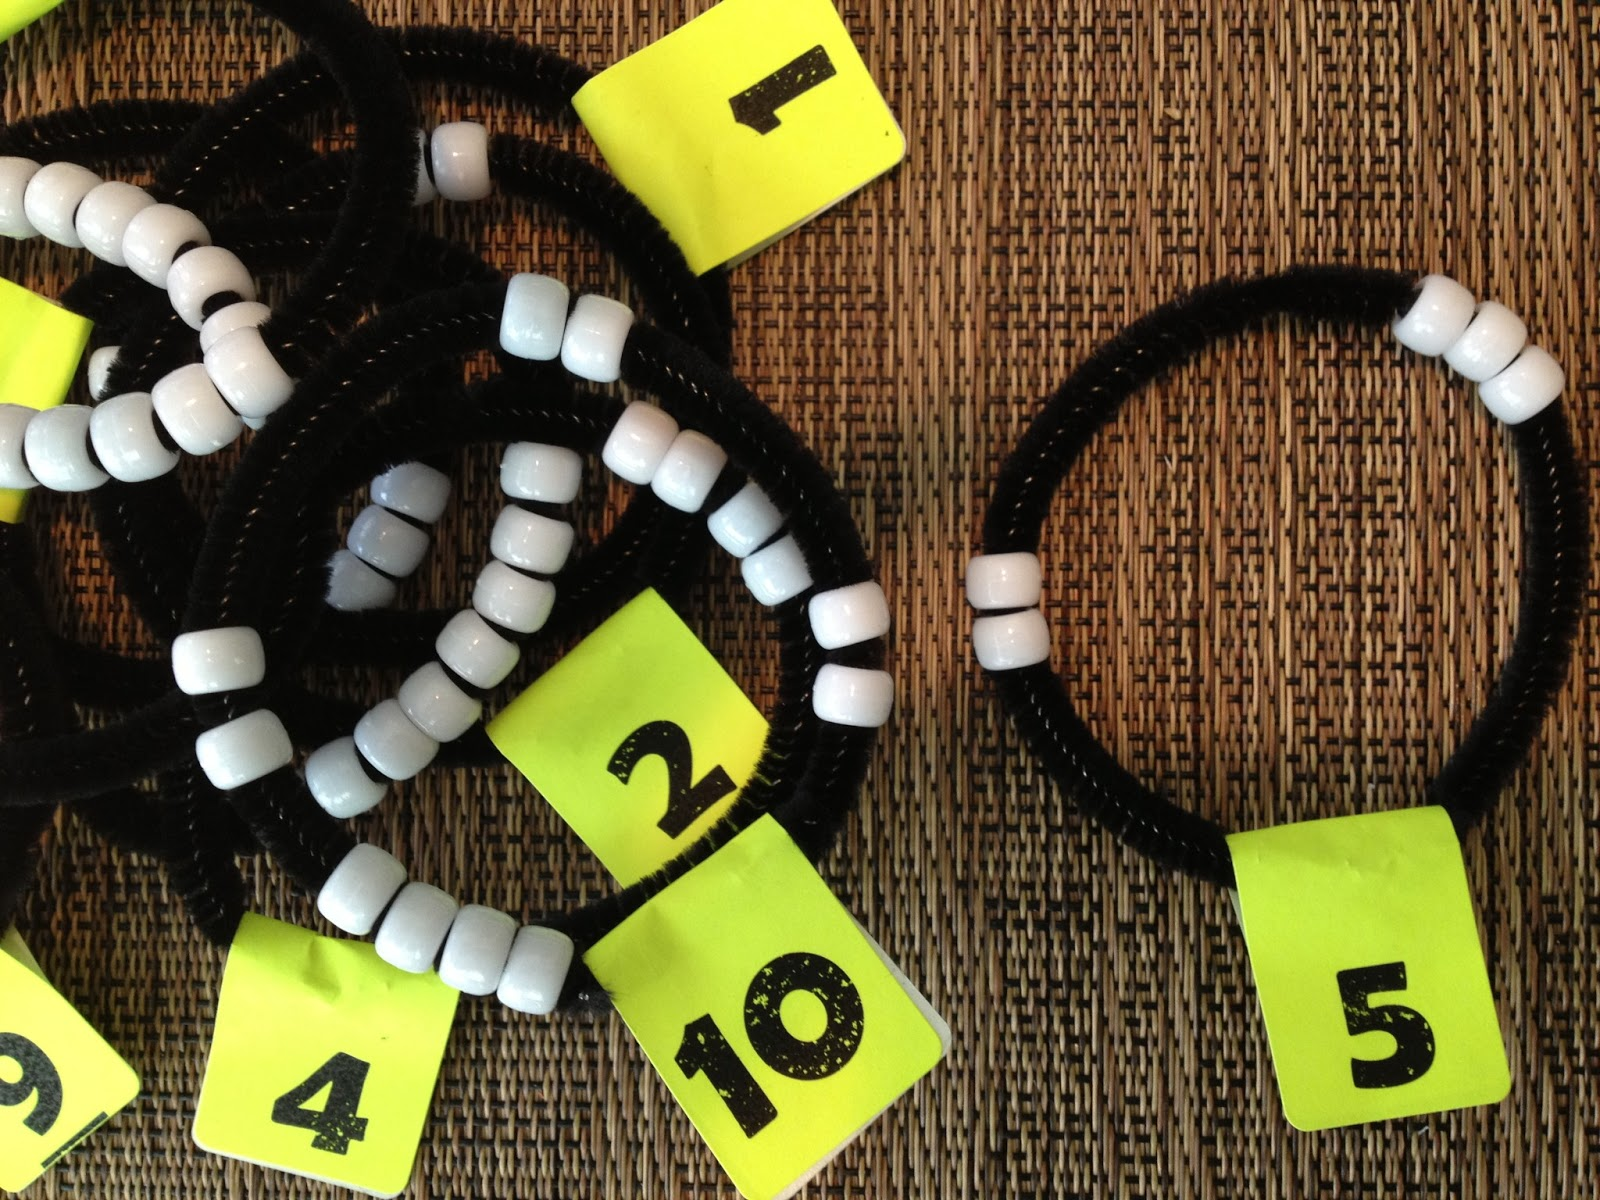 I Ve Blogged Recently About Using Dot Cards And Rekenreks To Develop Number Sense Today S Post Focuses On Another Great Tool Bracelets